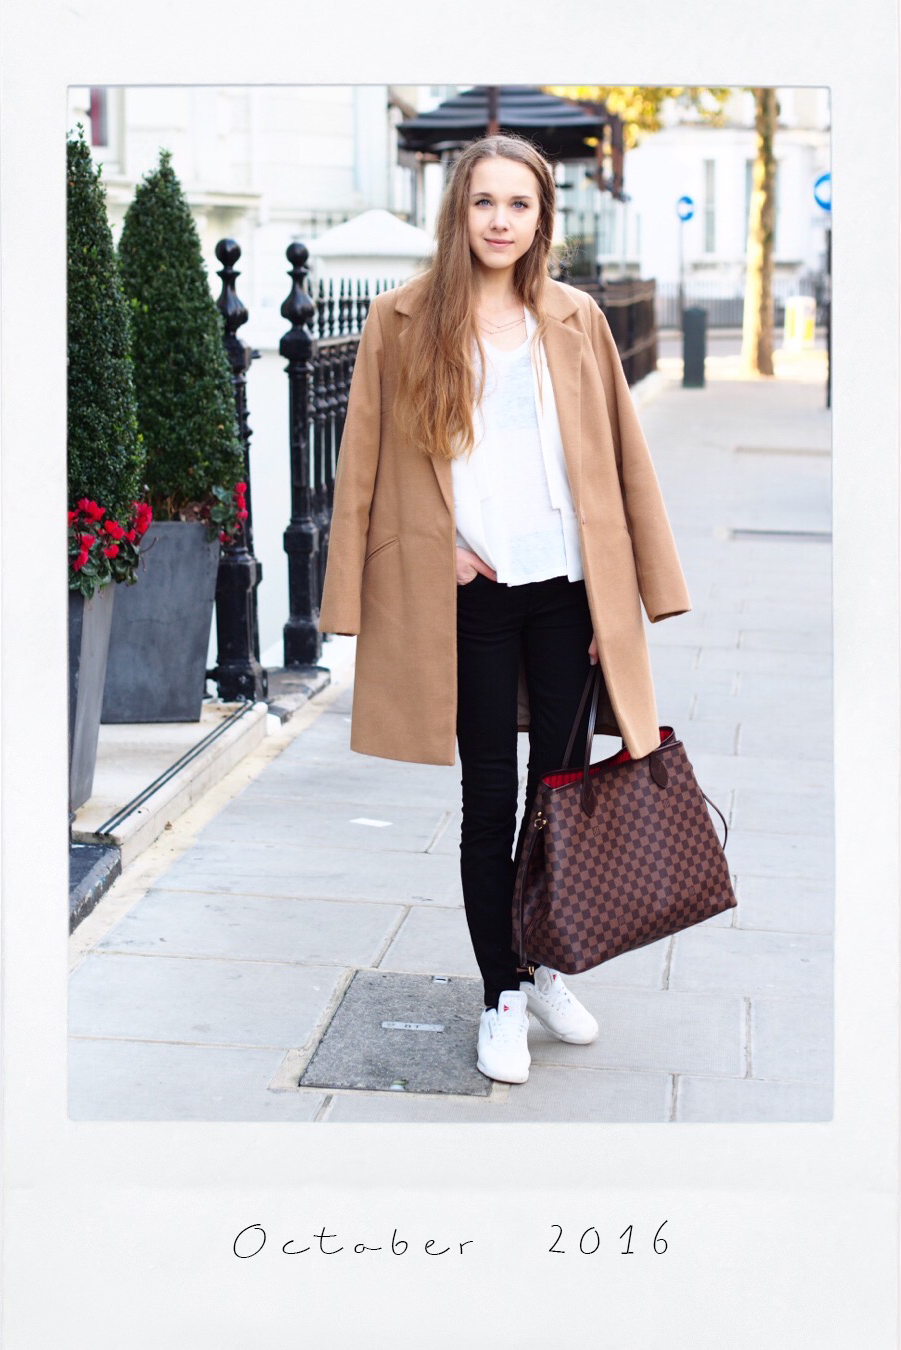 Autumn outfit inspiration with camel coat - Syysmuoti asuinspiraatio kamelitakki